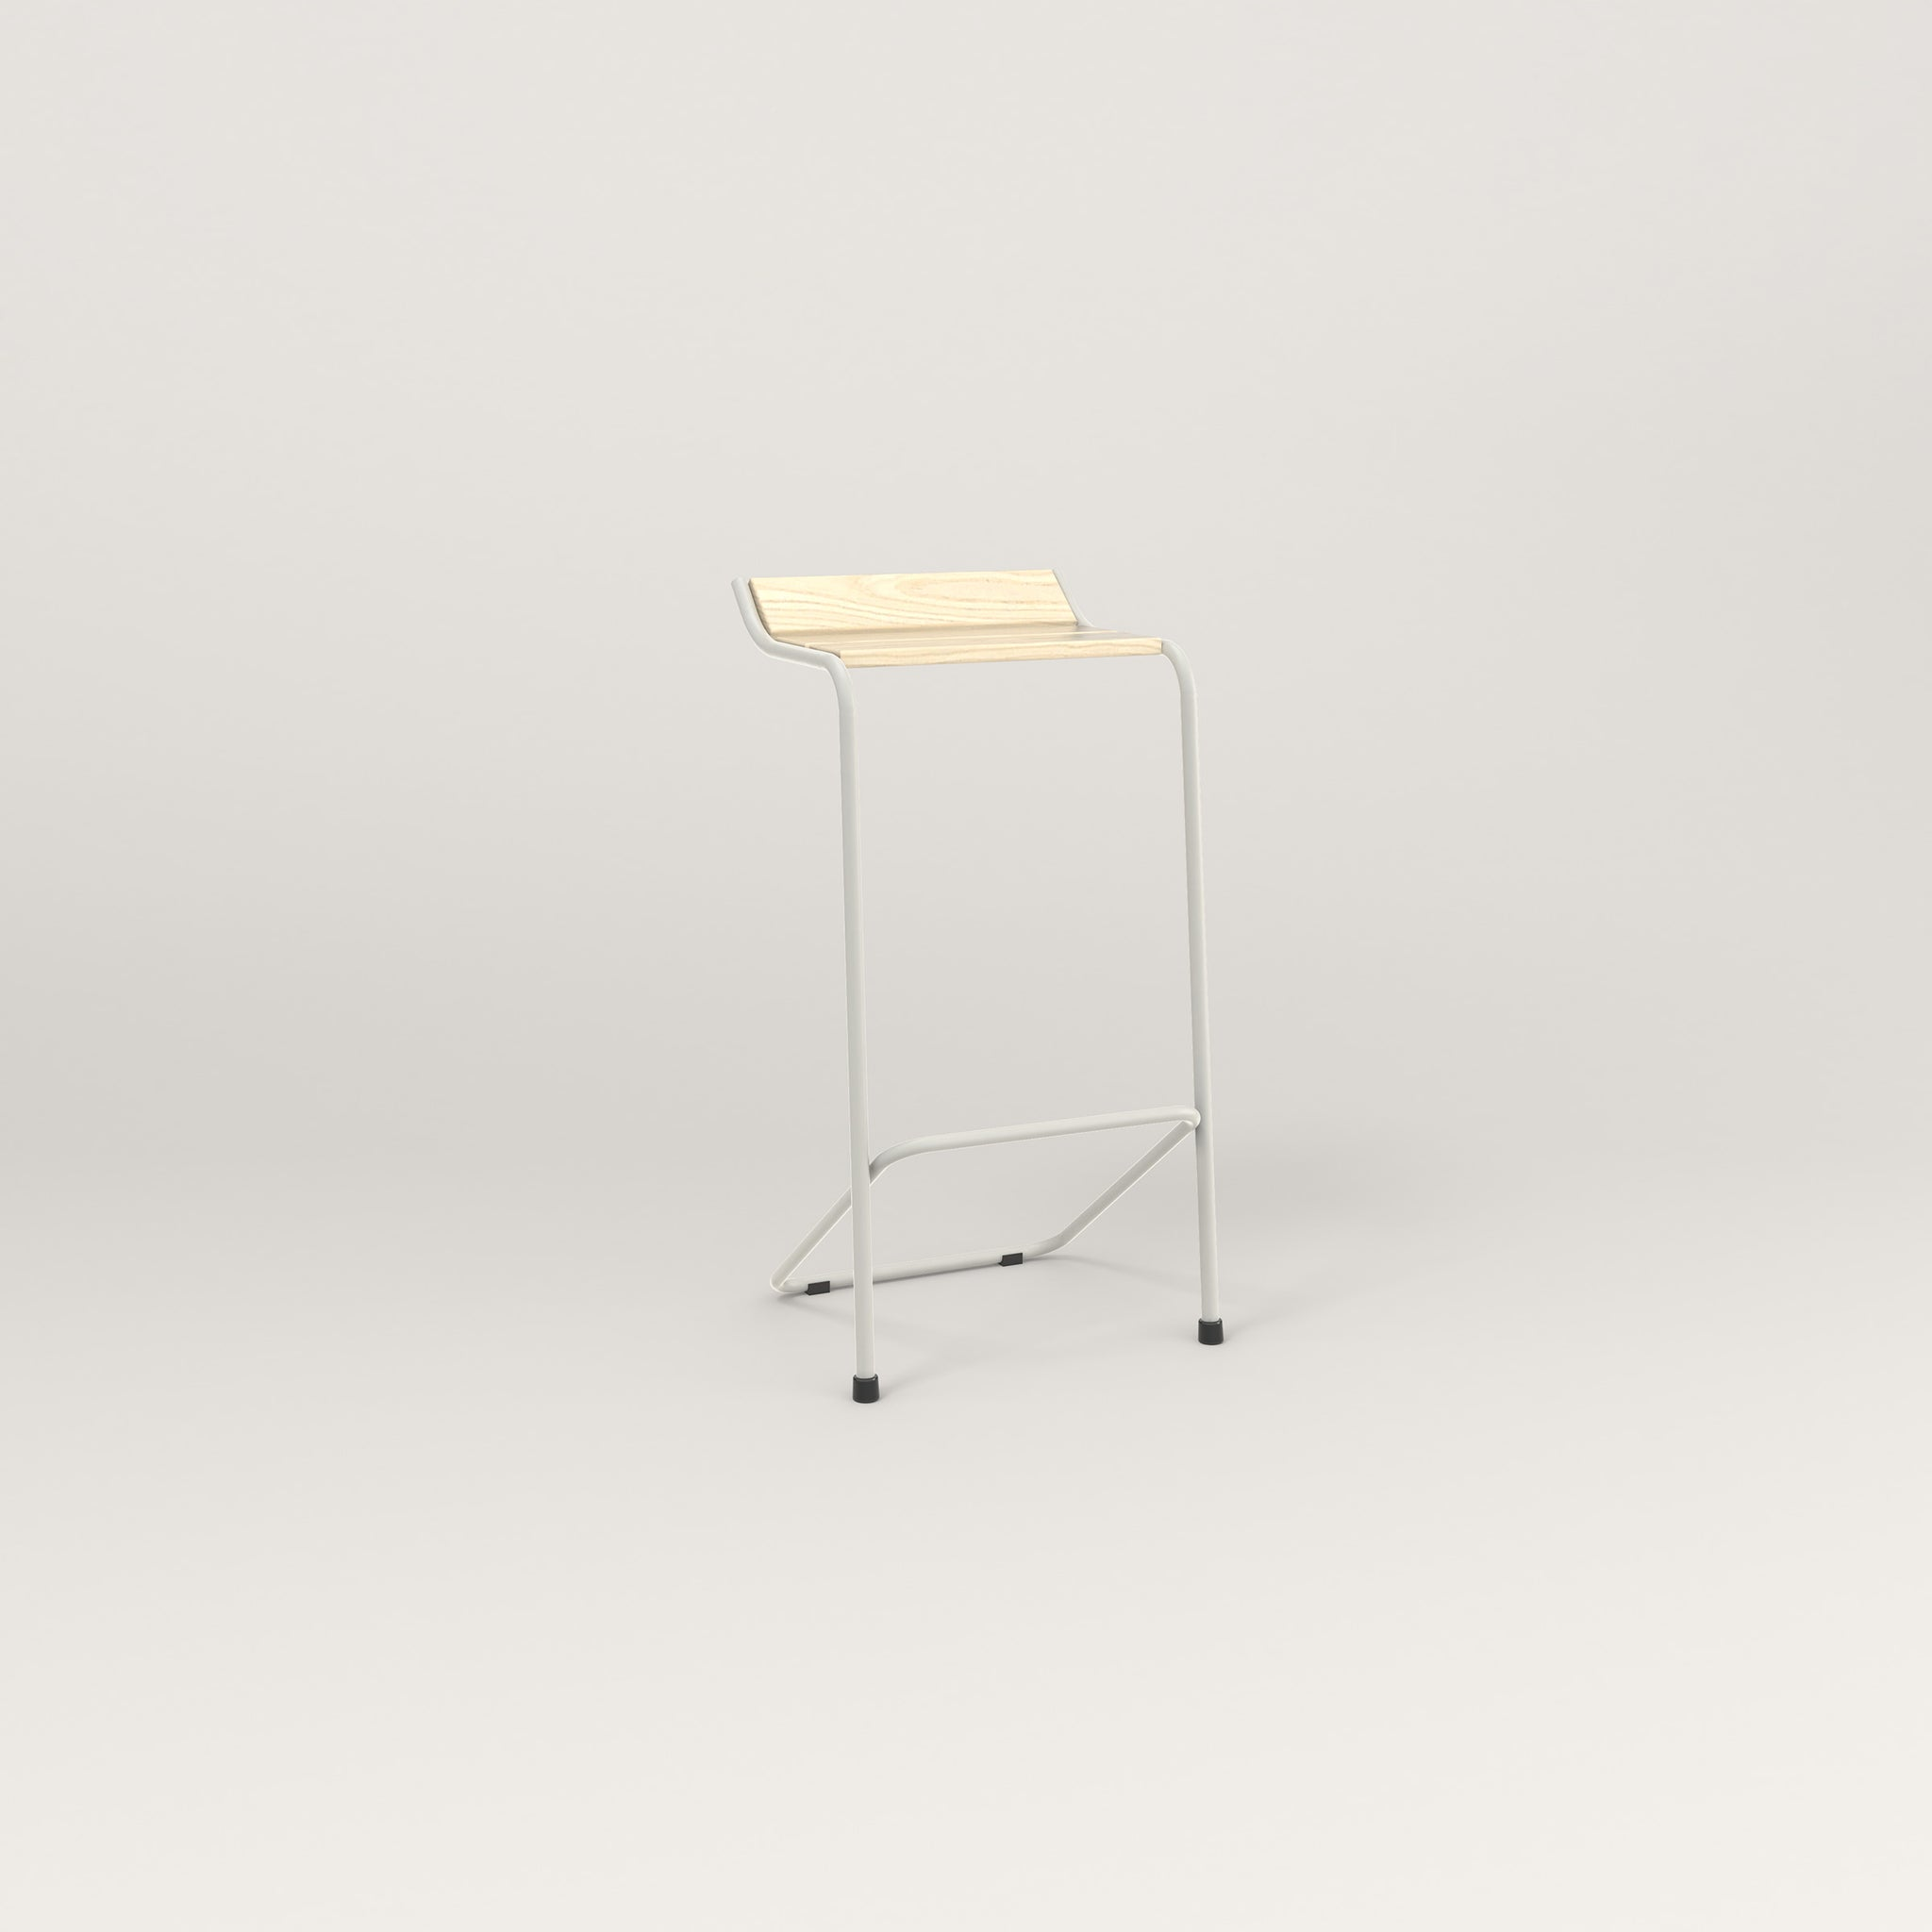 RAD Signature Bar Stool in solid ash and white powder coat.